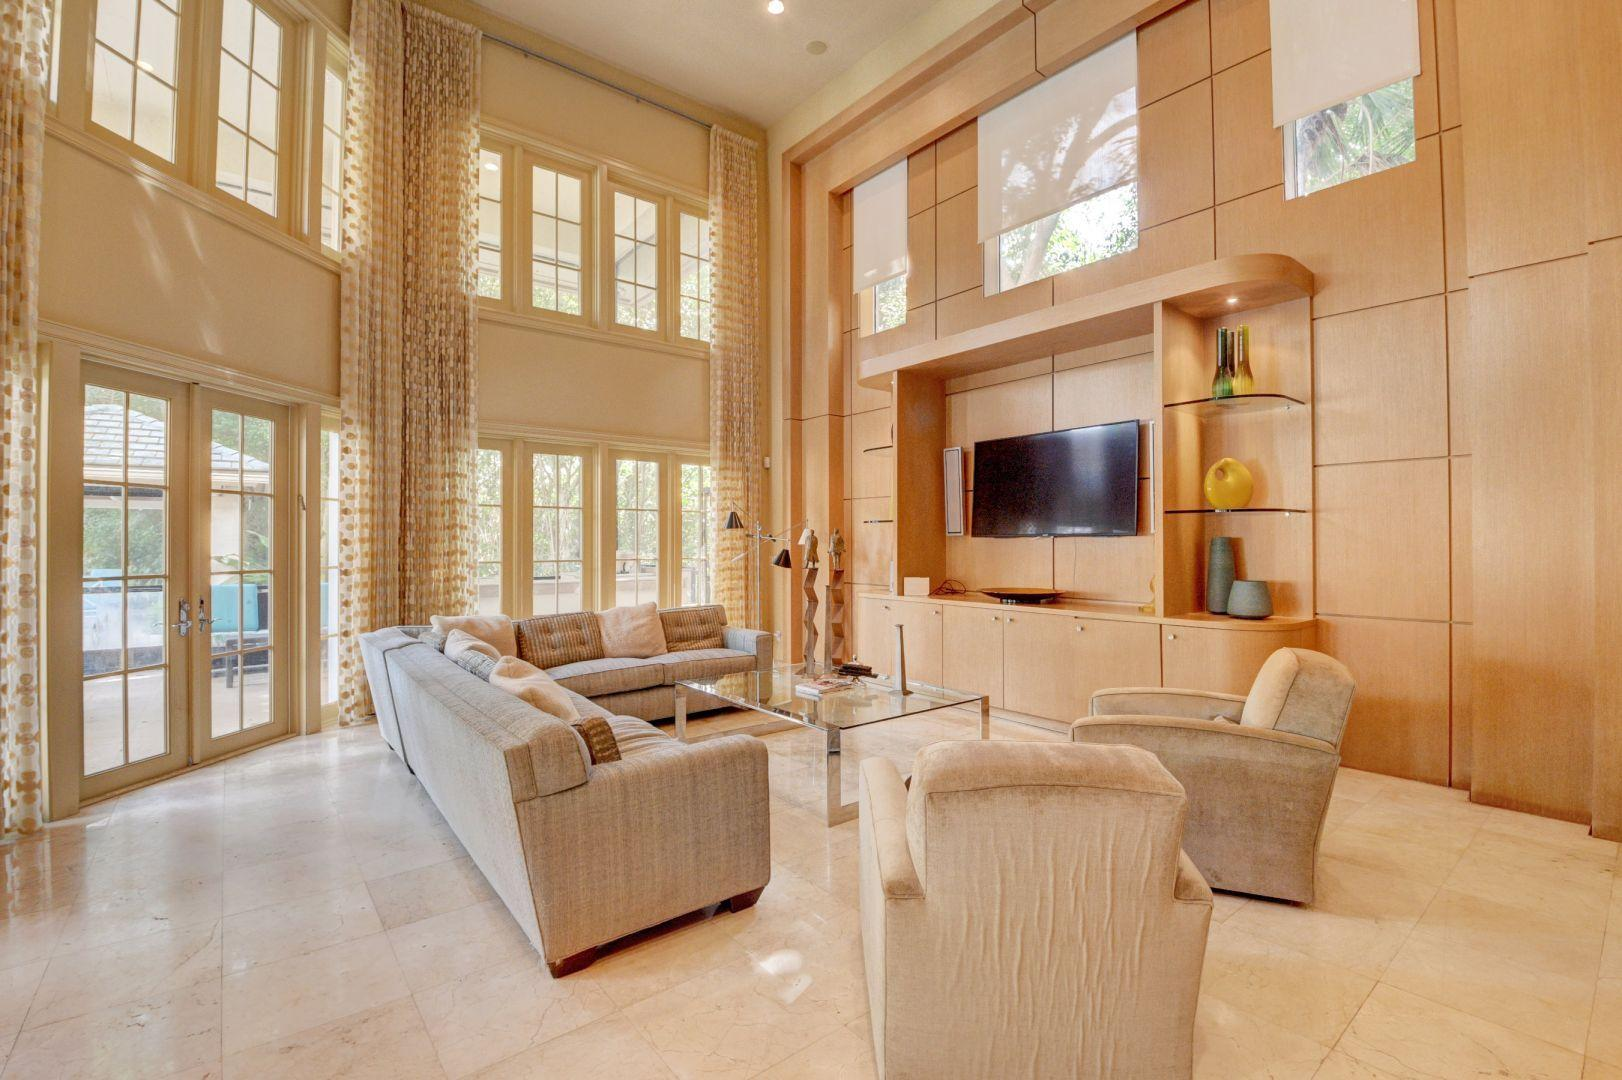 WOODFIELD COUNTRY CLUB HOMES